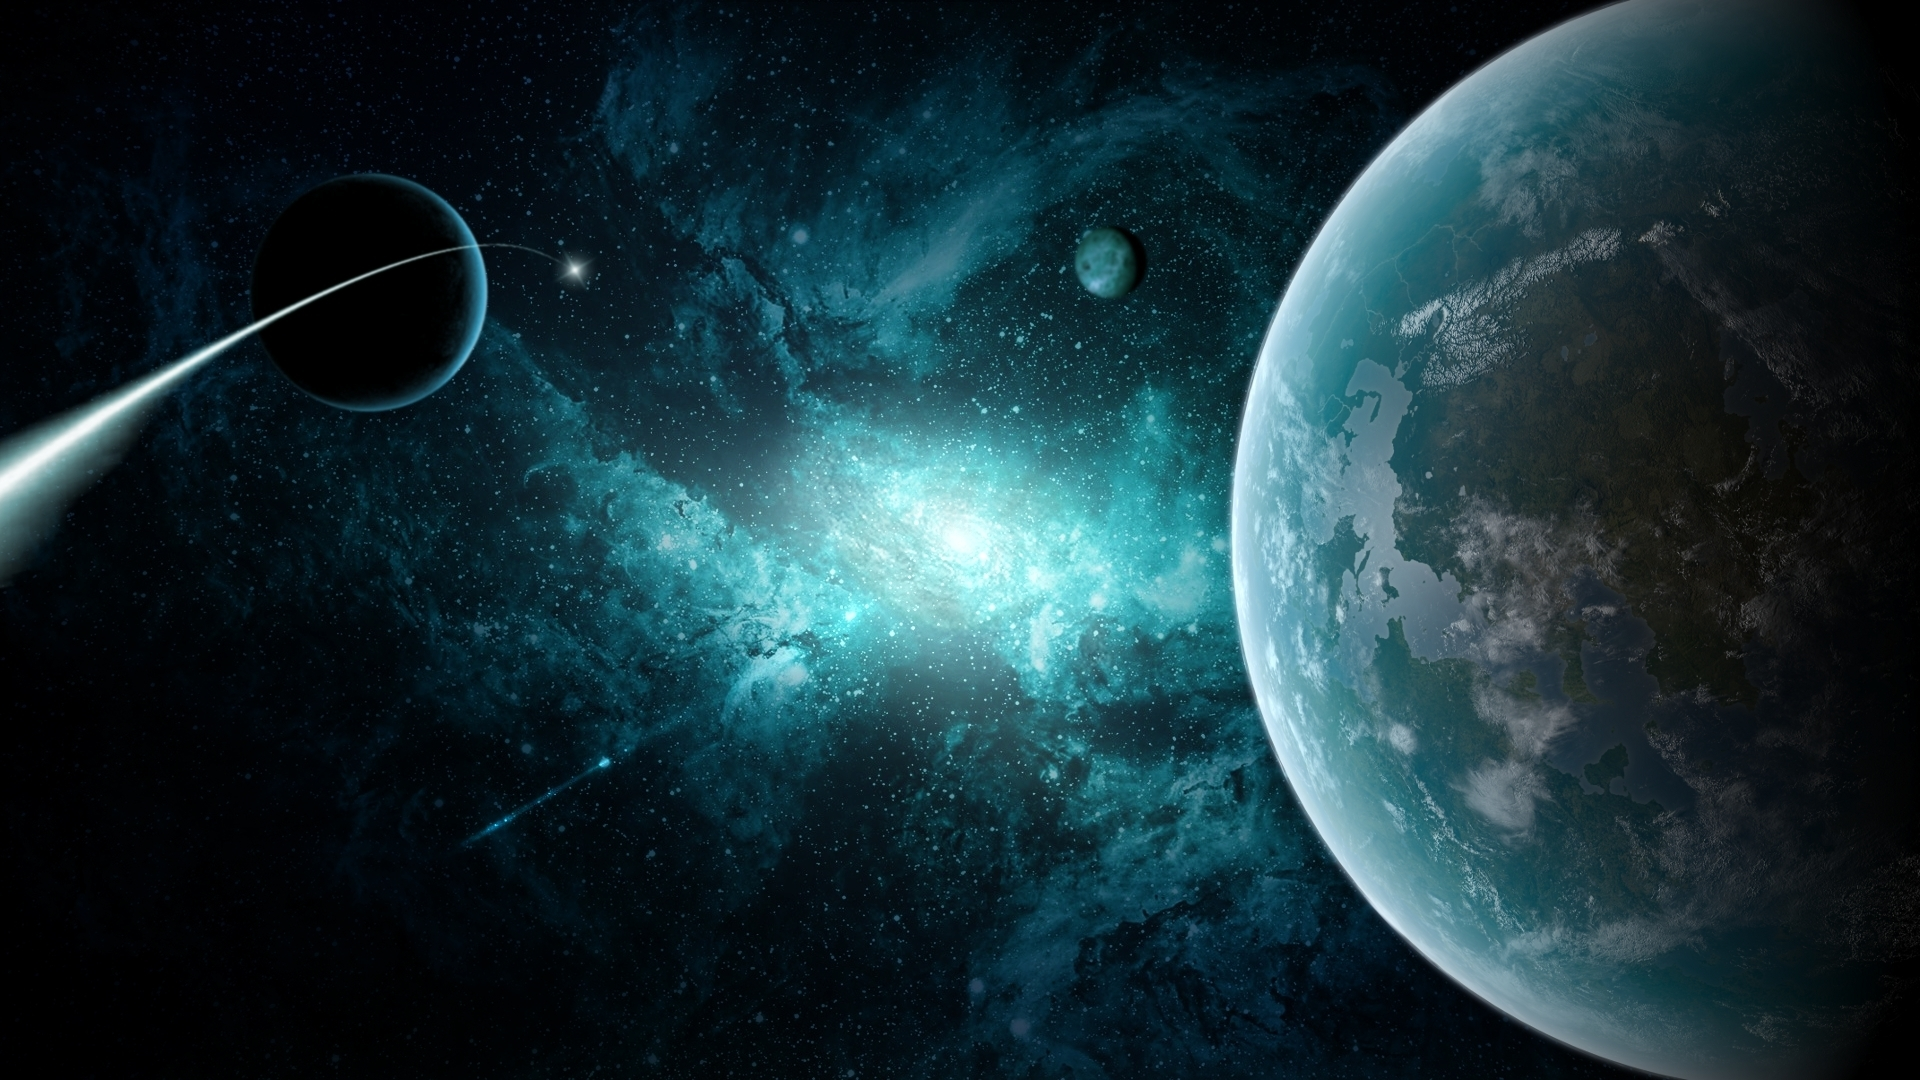 Sci-Fi Planets Wallpaper - Pics about space